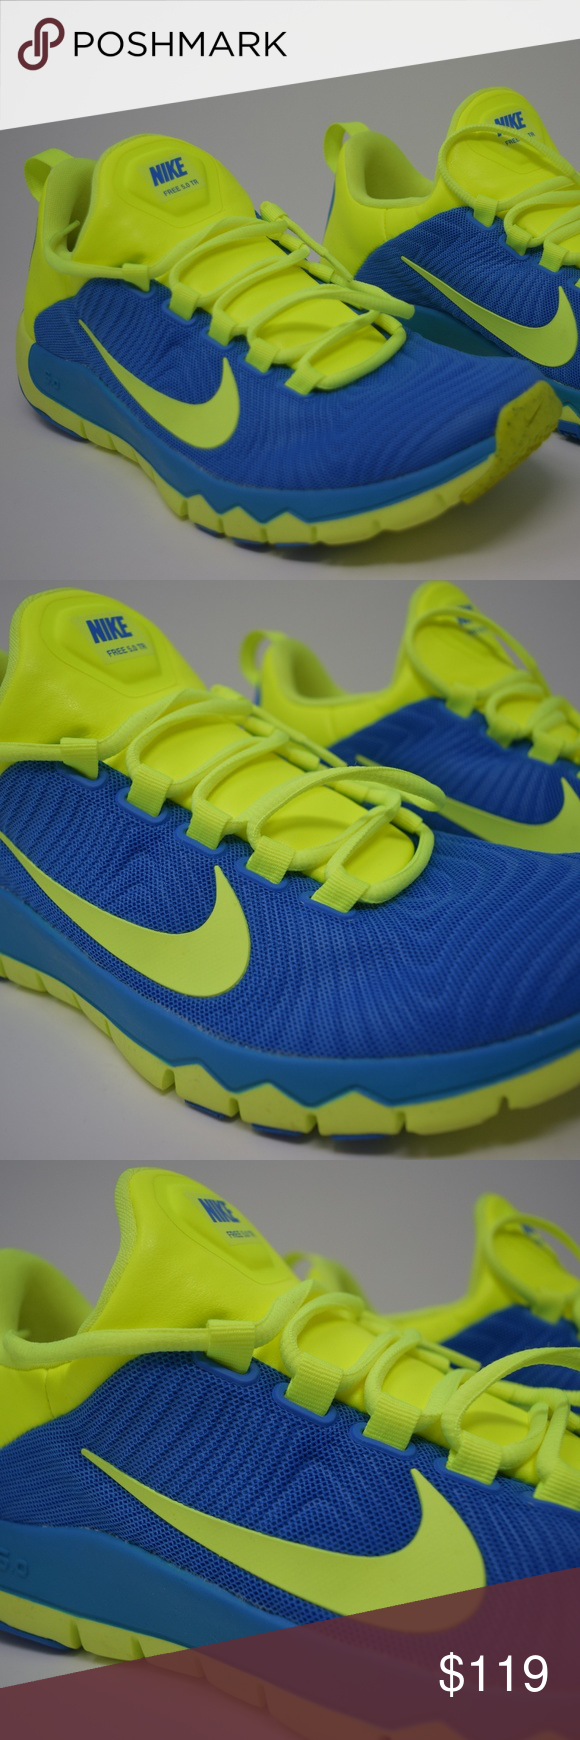 3e1a0716df24 NIKE Free Trainer 5.0 V5 Blue Volt Mens 644671-470 RARE HARD TO FIND Shoe  is in brand new never worn used. Send offers